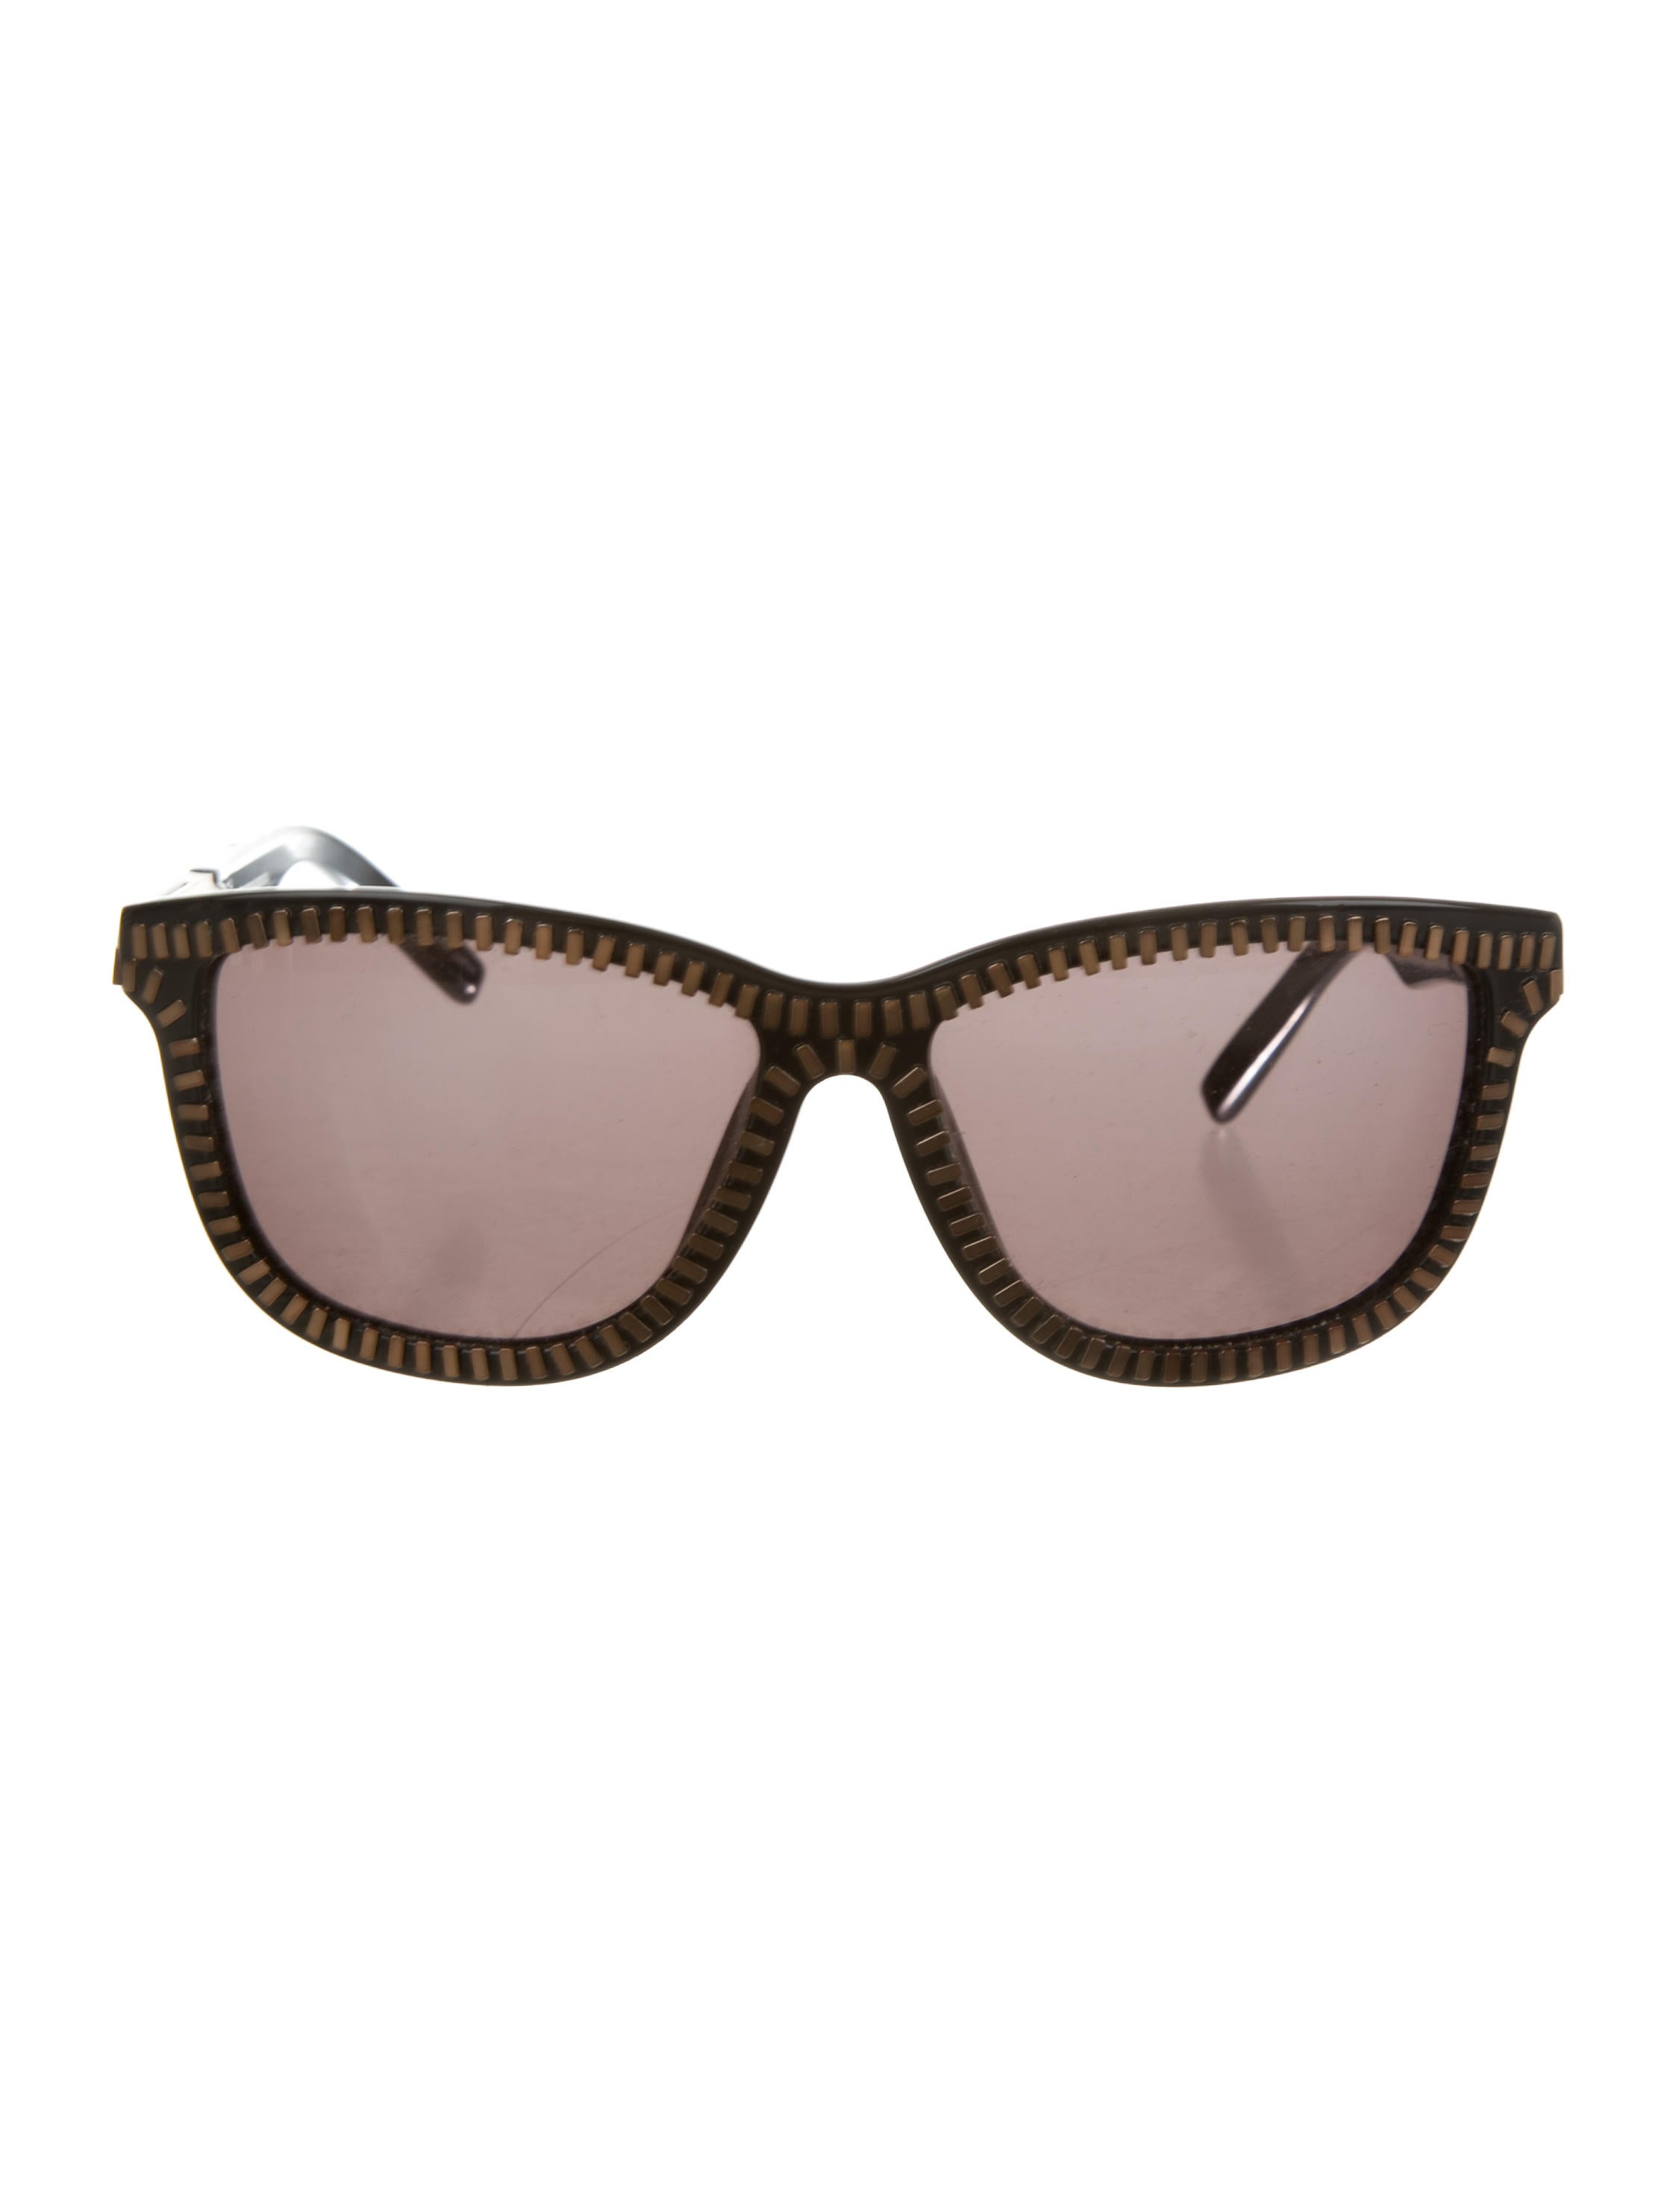 Alexander Wang Sunglasses Cat Eye